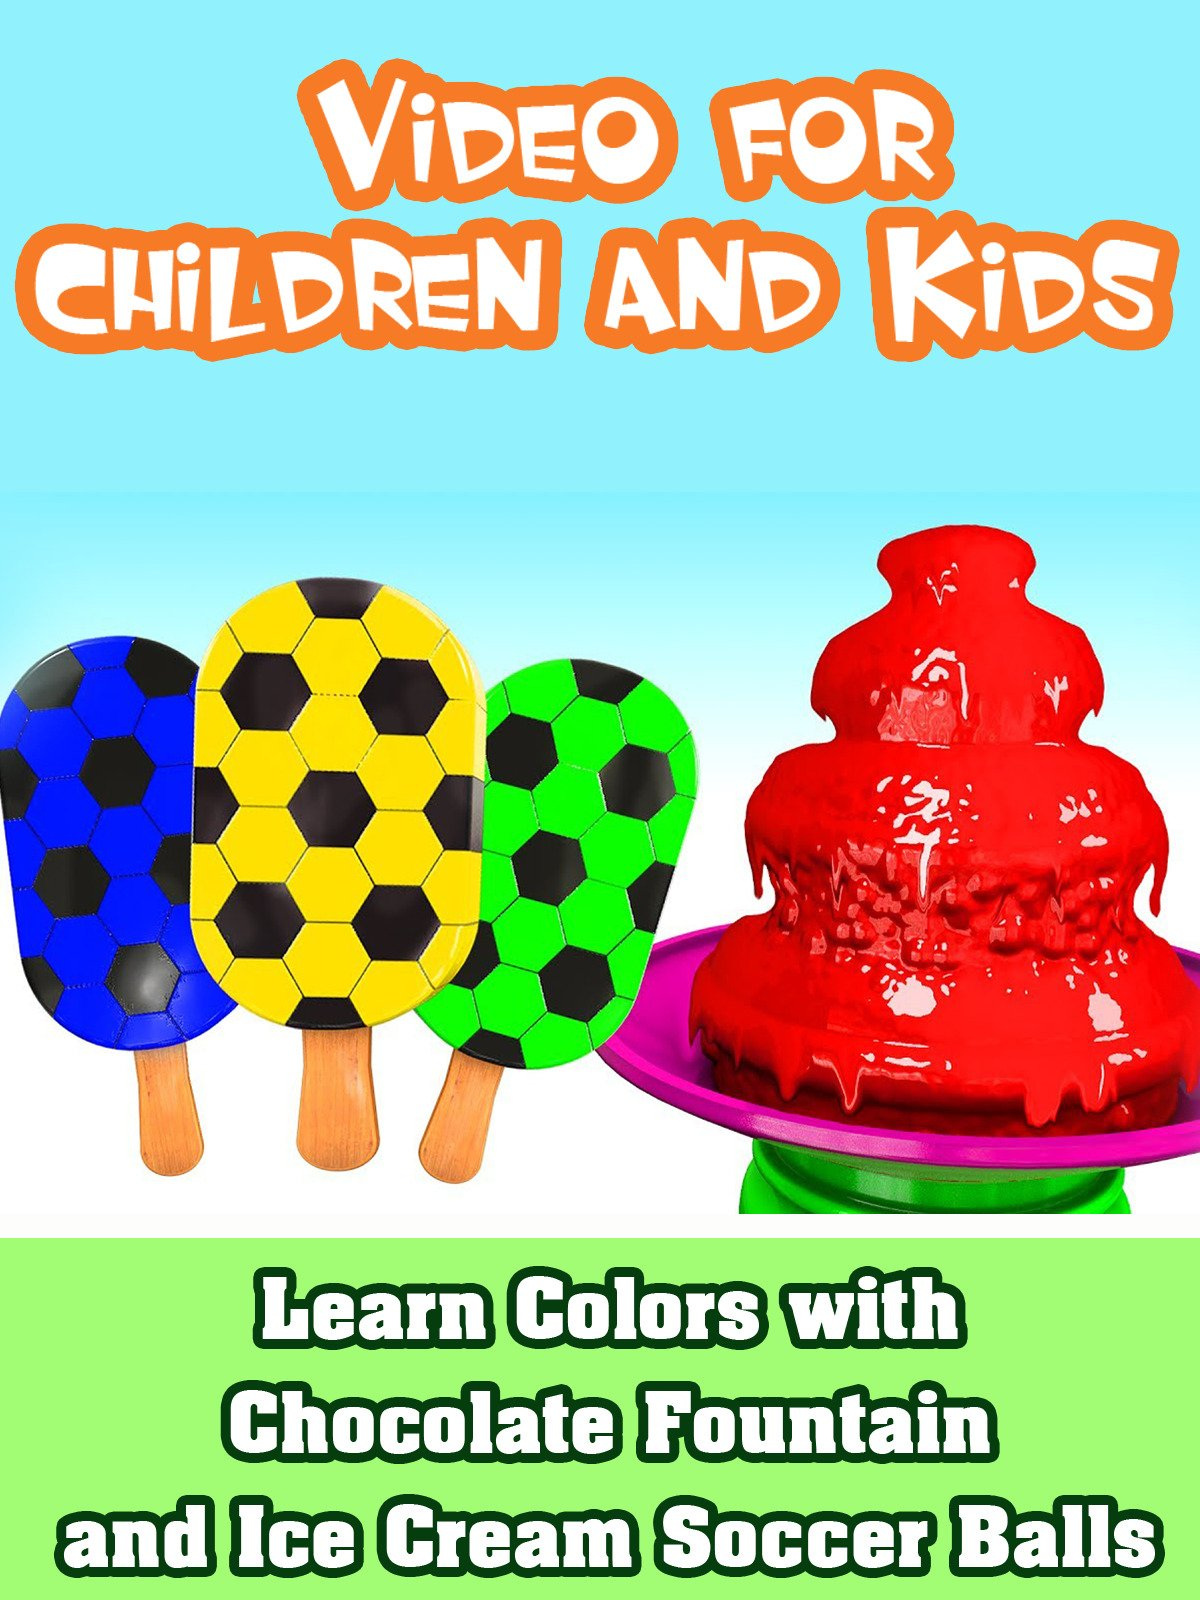 Learn Colors with Chocolate Fountain and Ice Cream Soccer Balls